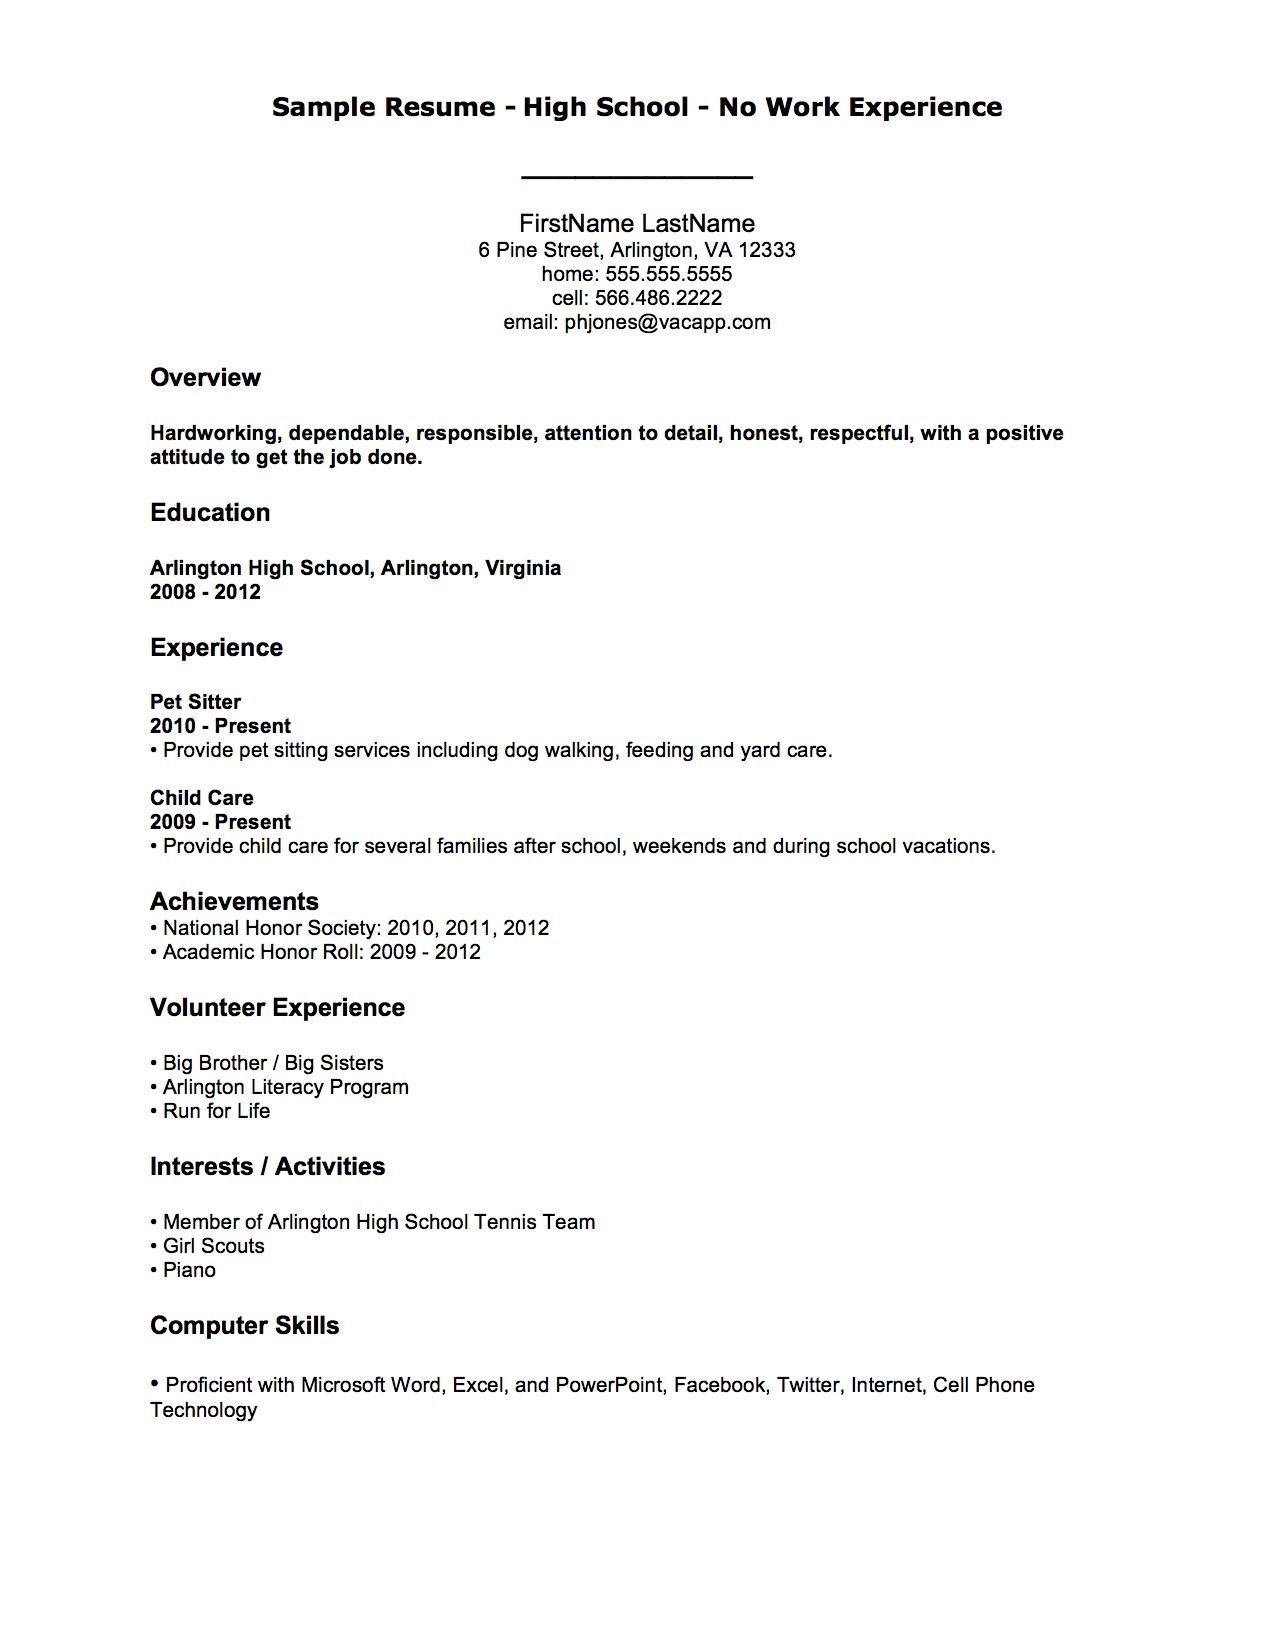 A Job Resume Sample Fair Resume Examples No Job Experience  Resume Examples  Pinterest .